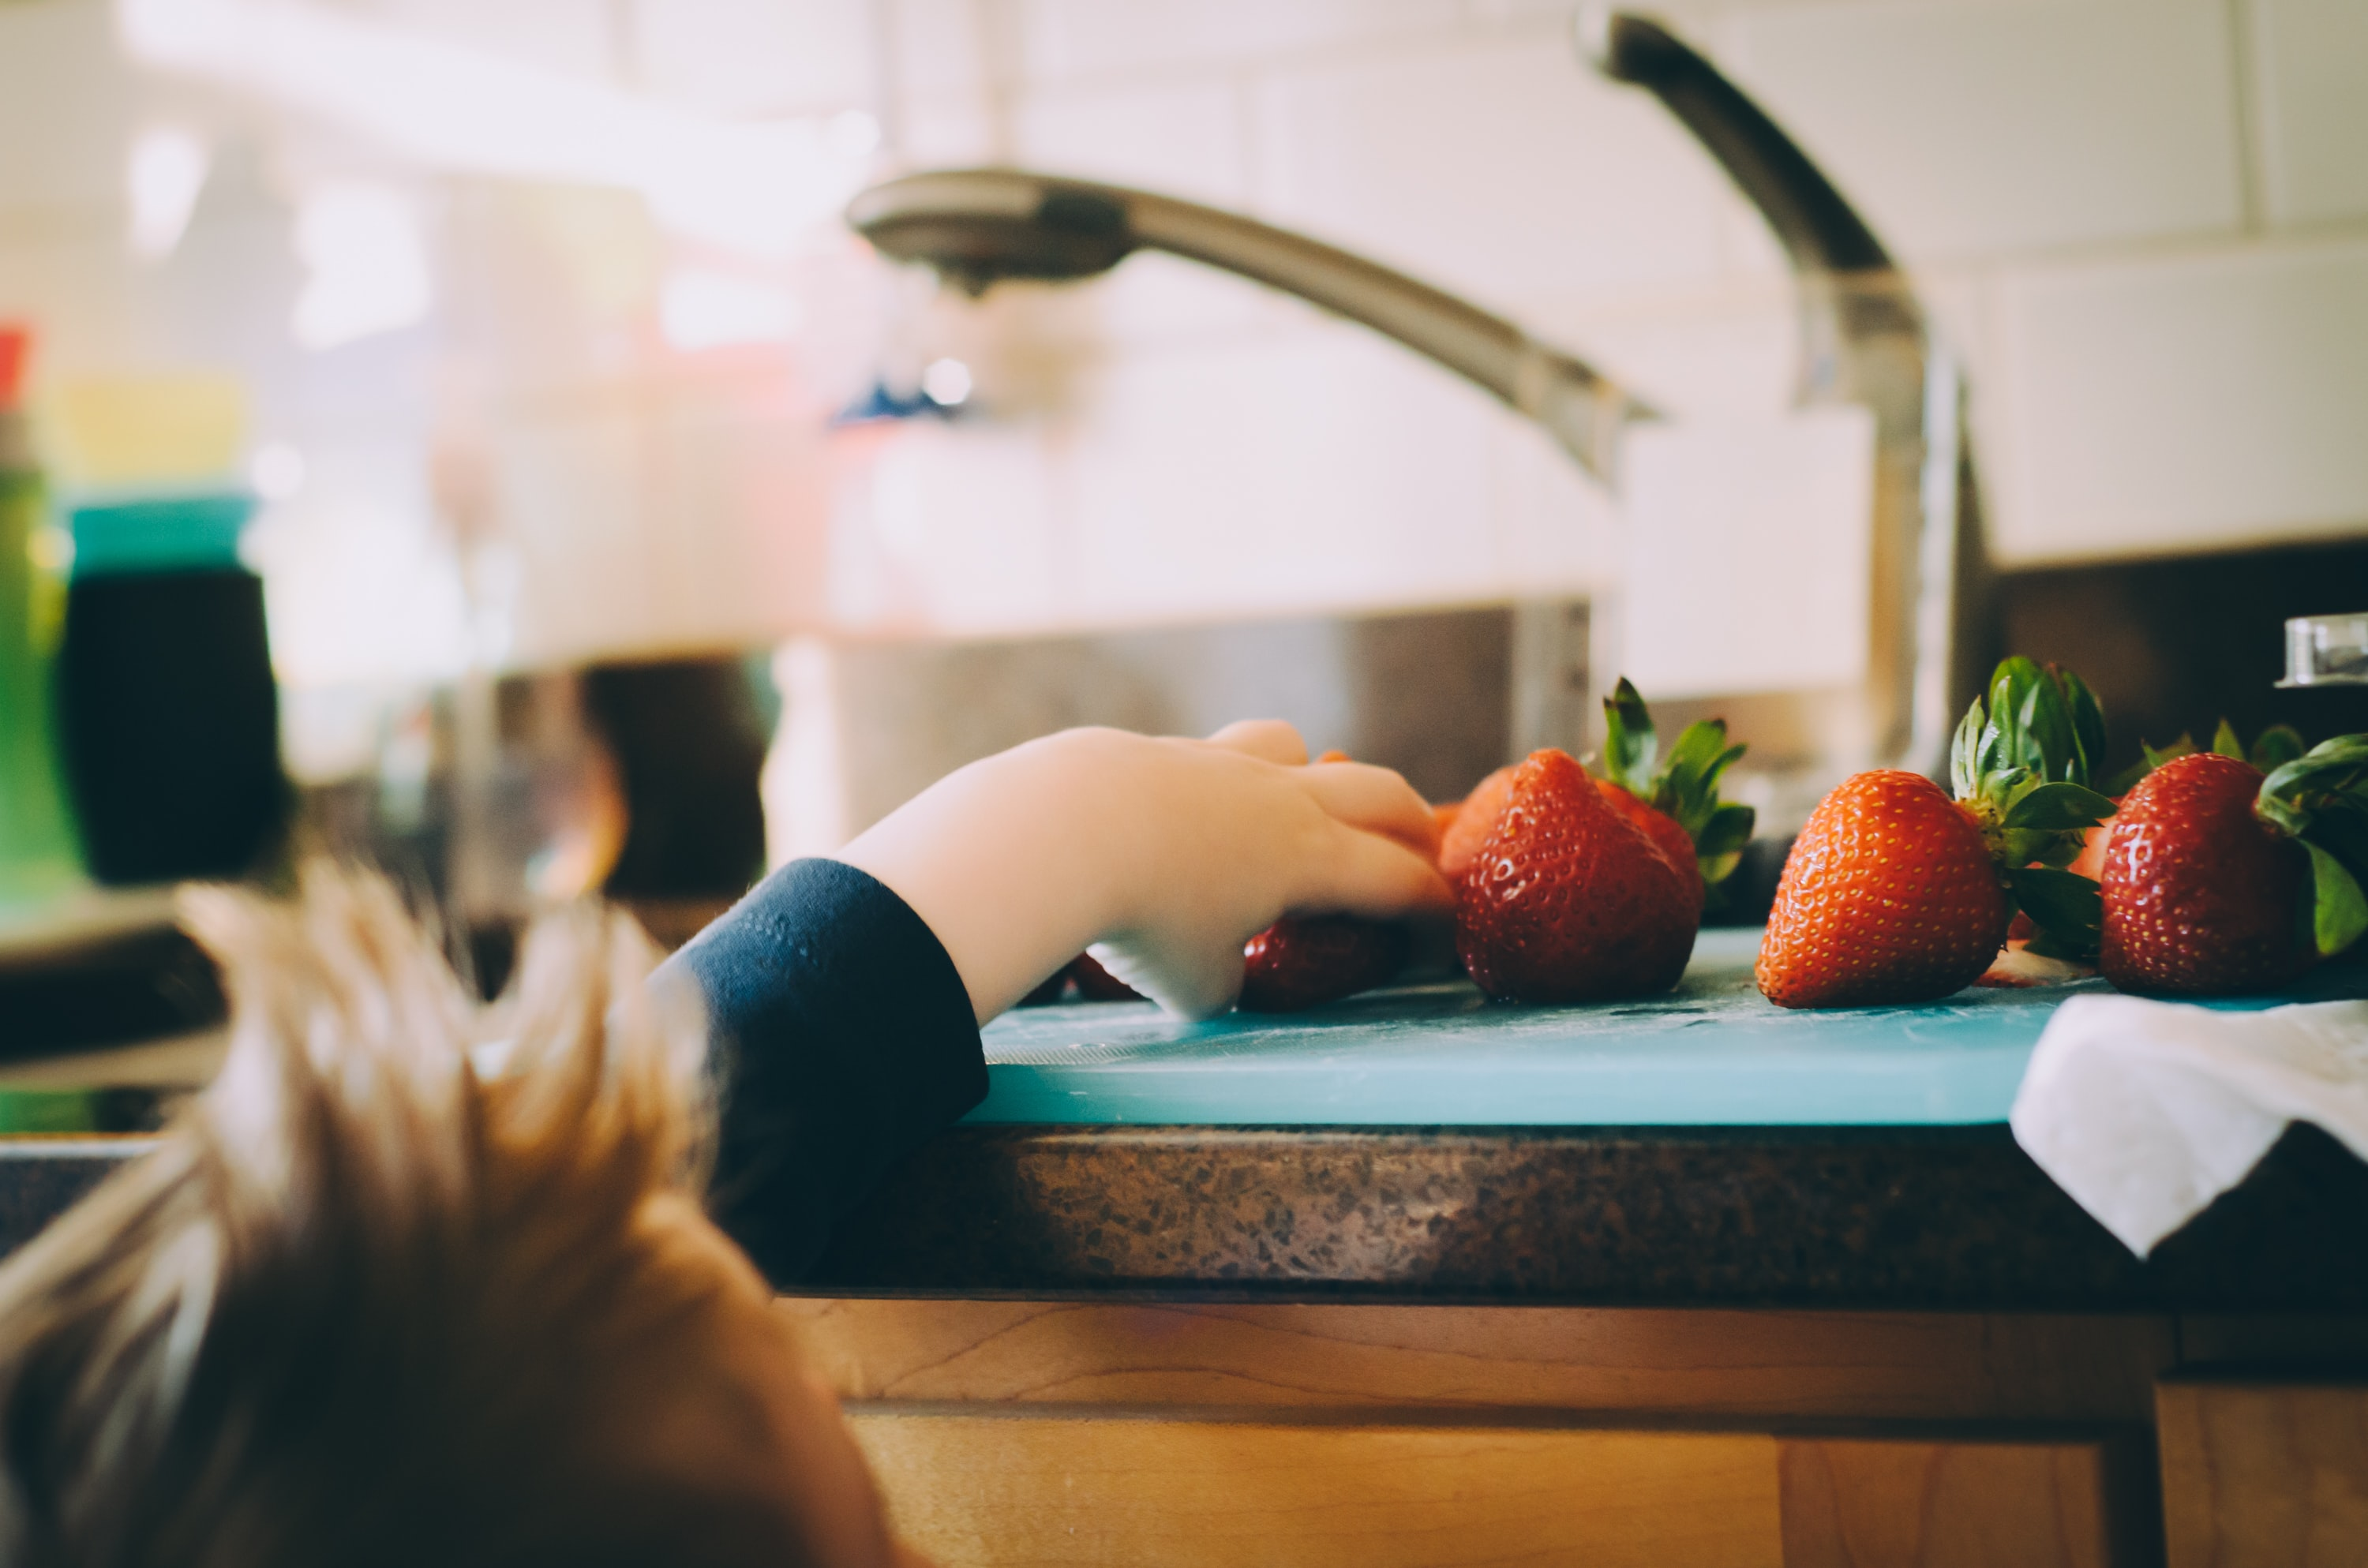 A little boy taking strawberries off of a cutting board on the countertop